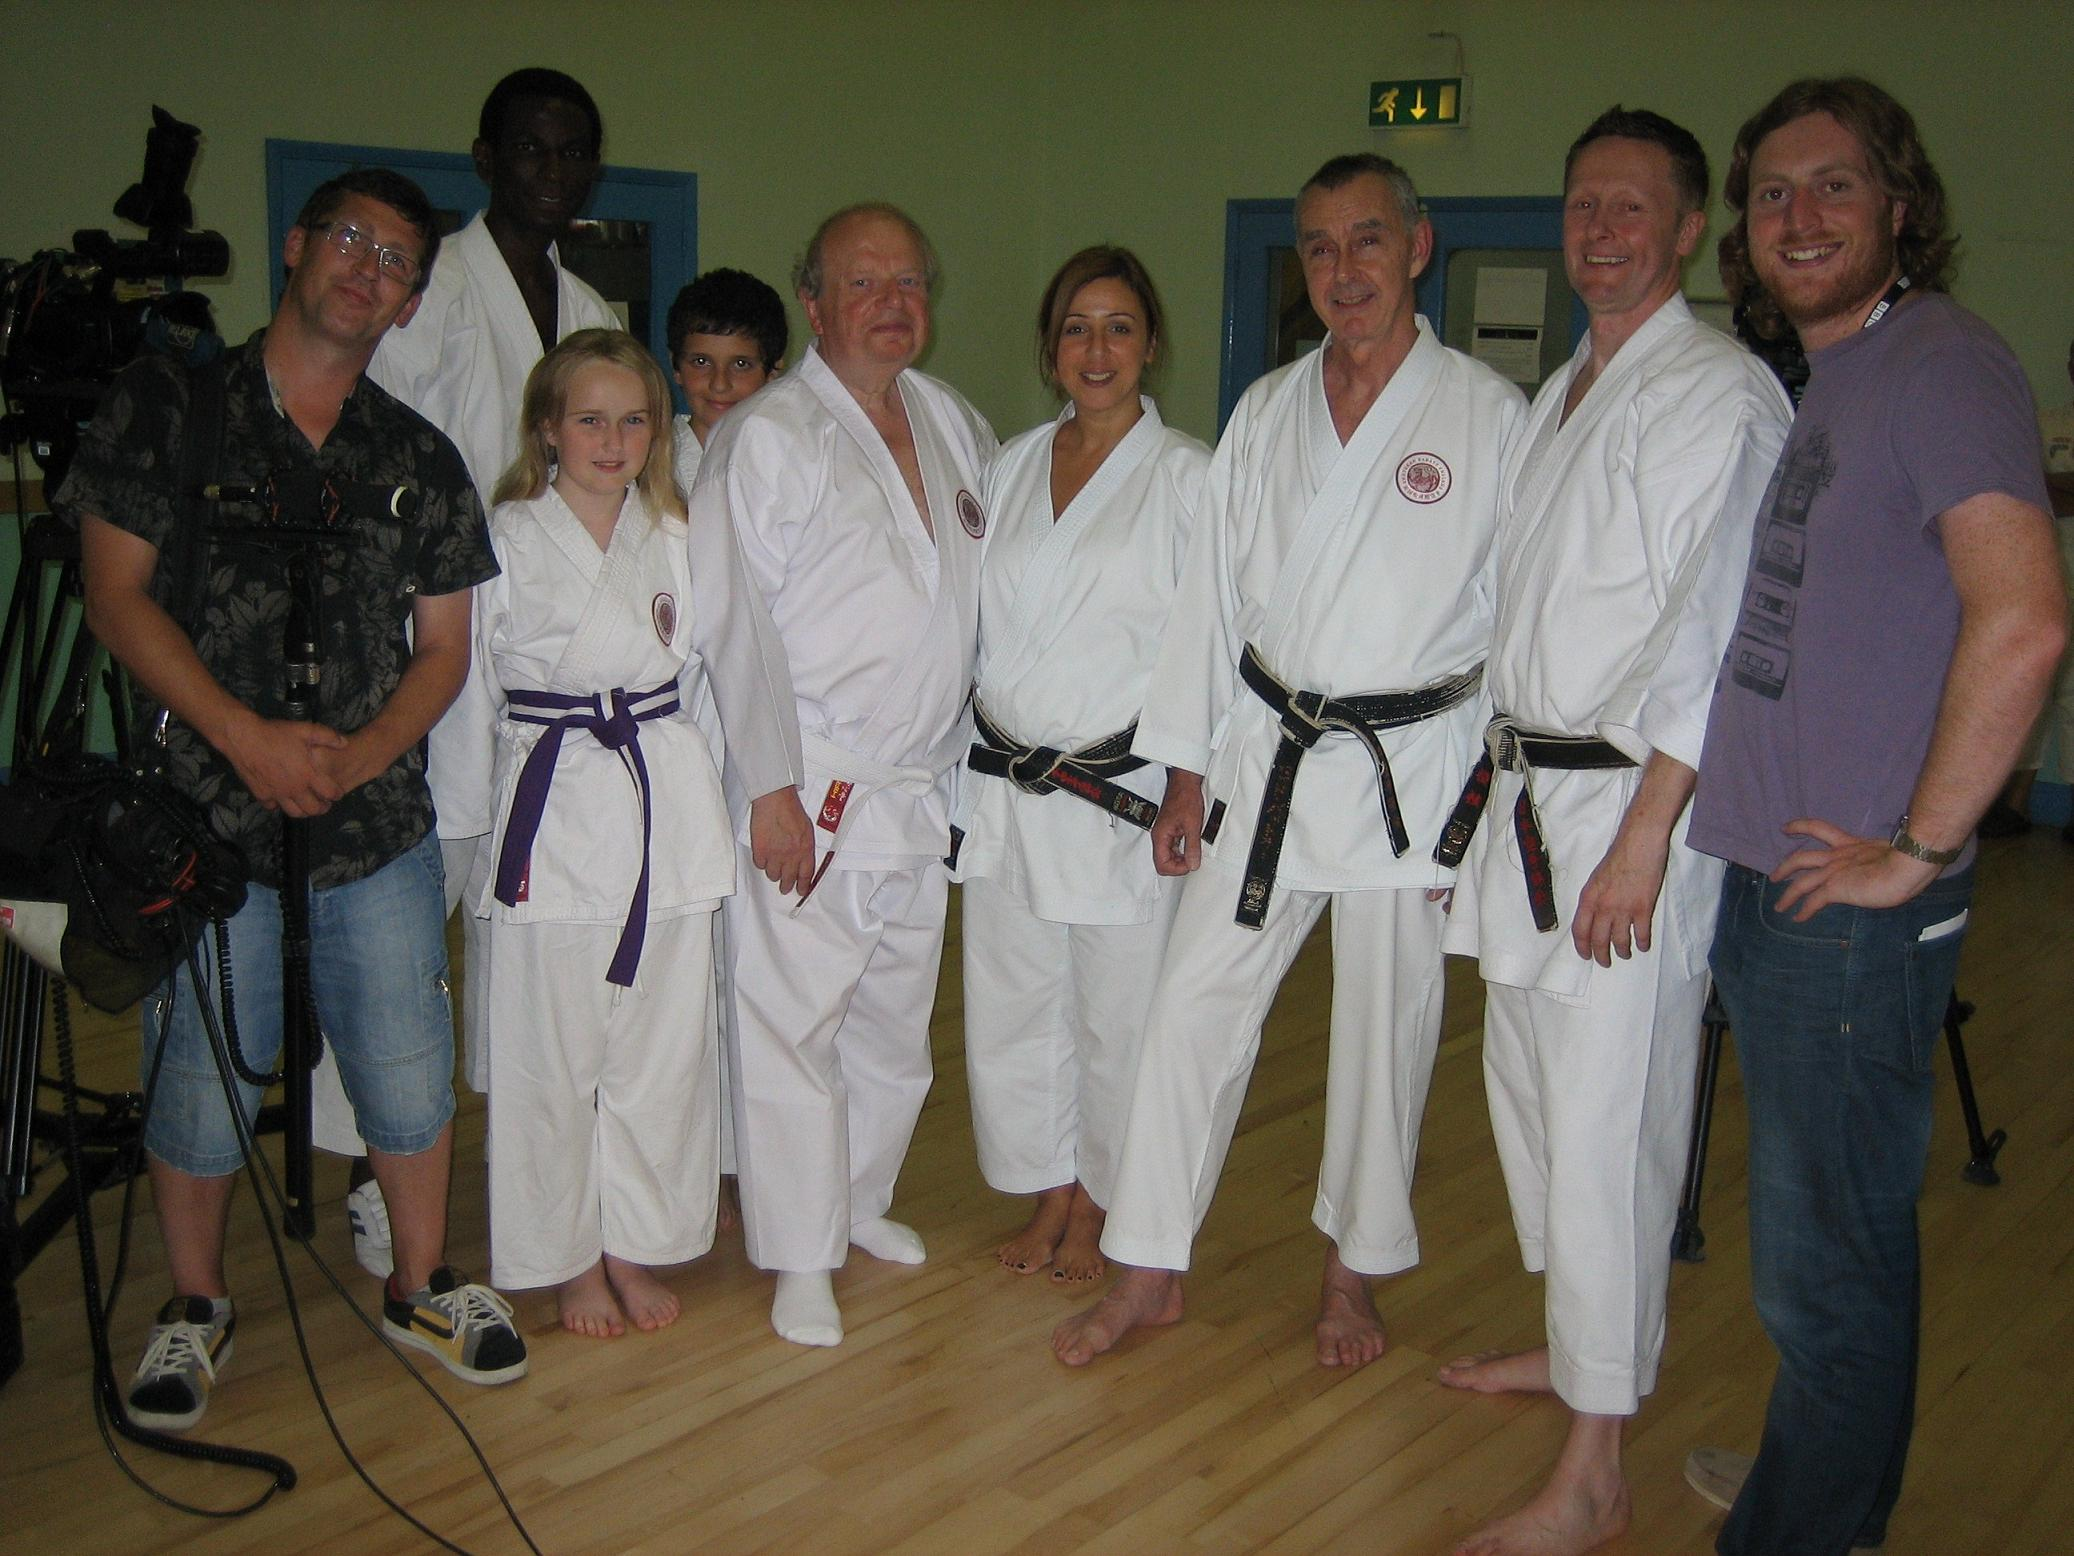 John Sergeant with members of the Shotokan Karate Club